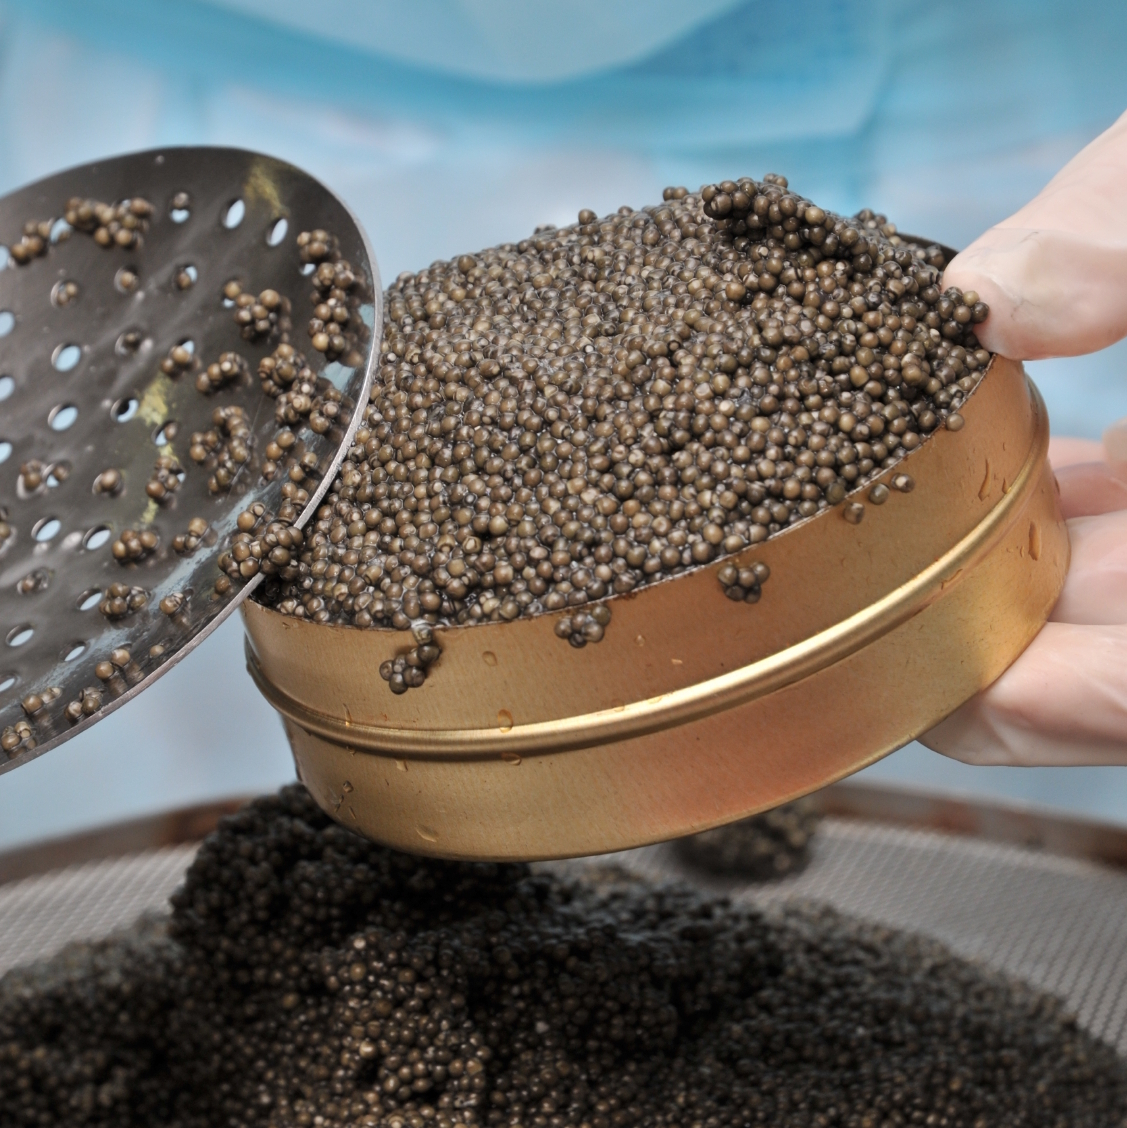 Caviar -- an expensive delicacy that's not much to look at.